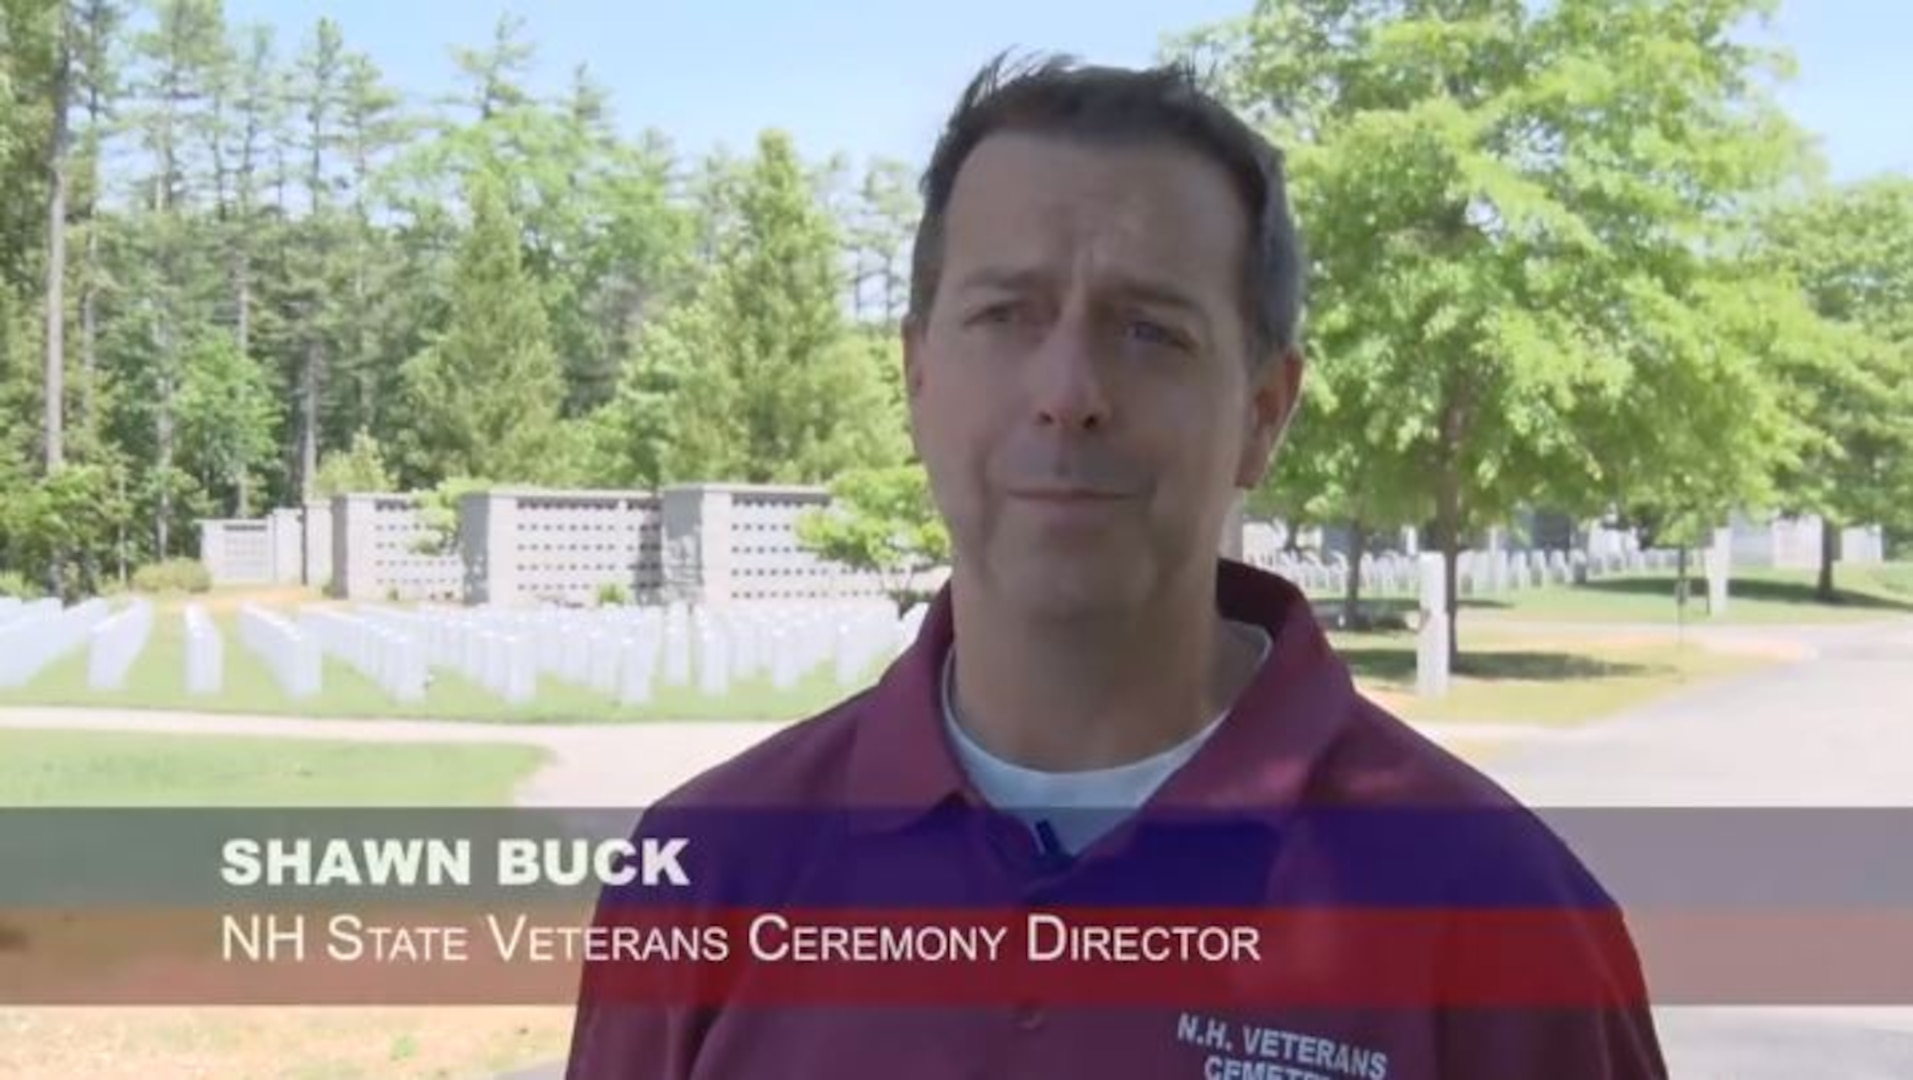 Shawn Buck, director of the New Hampshire Veterans Cemetery, employed the 157th Civil Engineers to build a berm to decrease traffic noise.